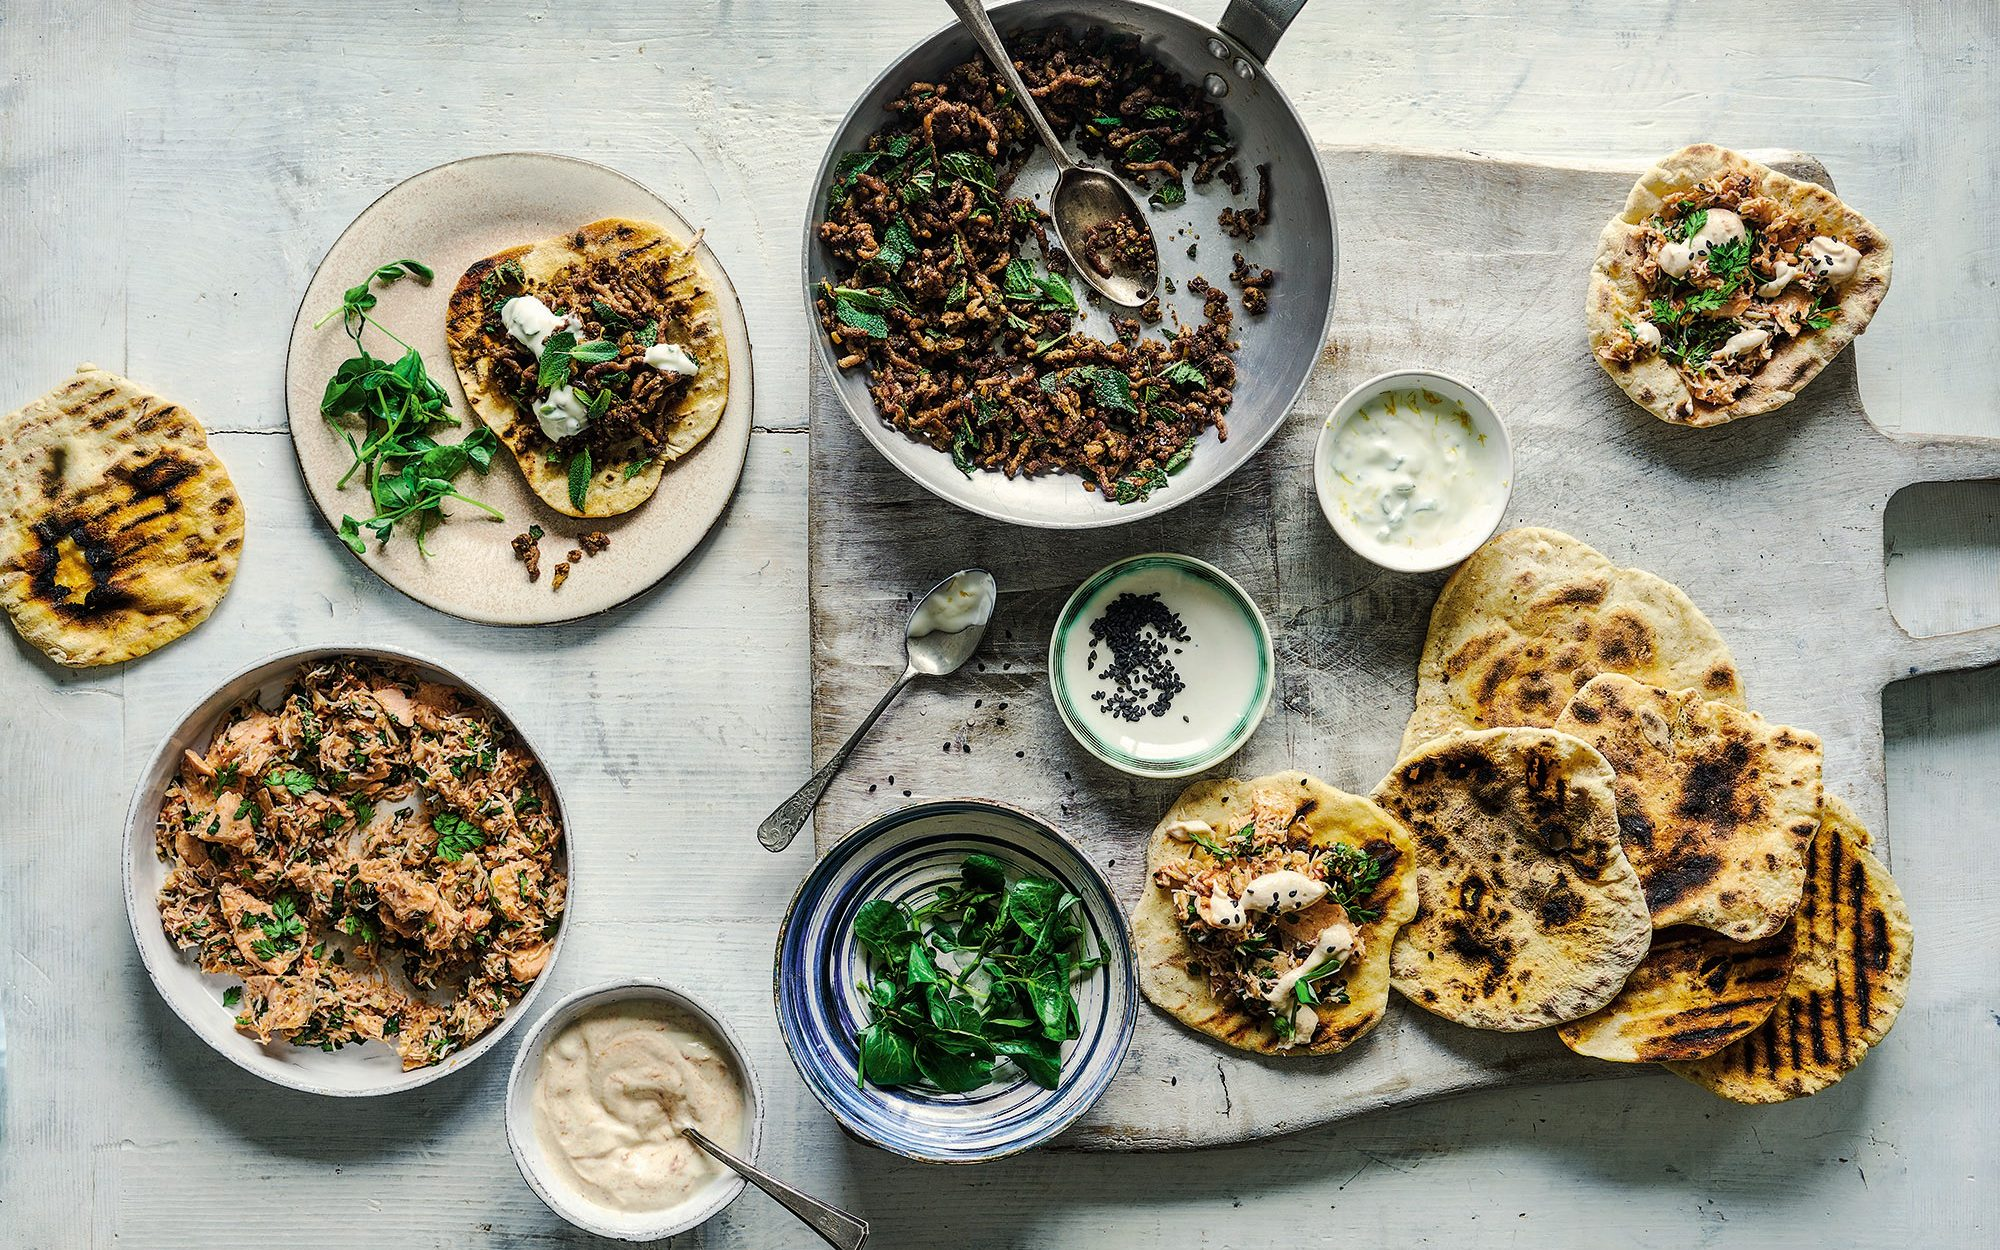 Die Libanesische Küche Salma Hage Make It Mezze Six Lebanese Small Plates For Sharing With